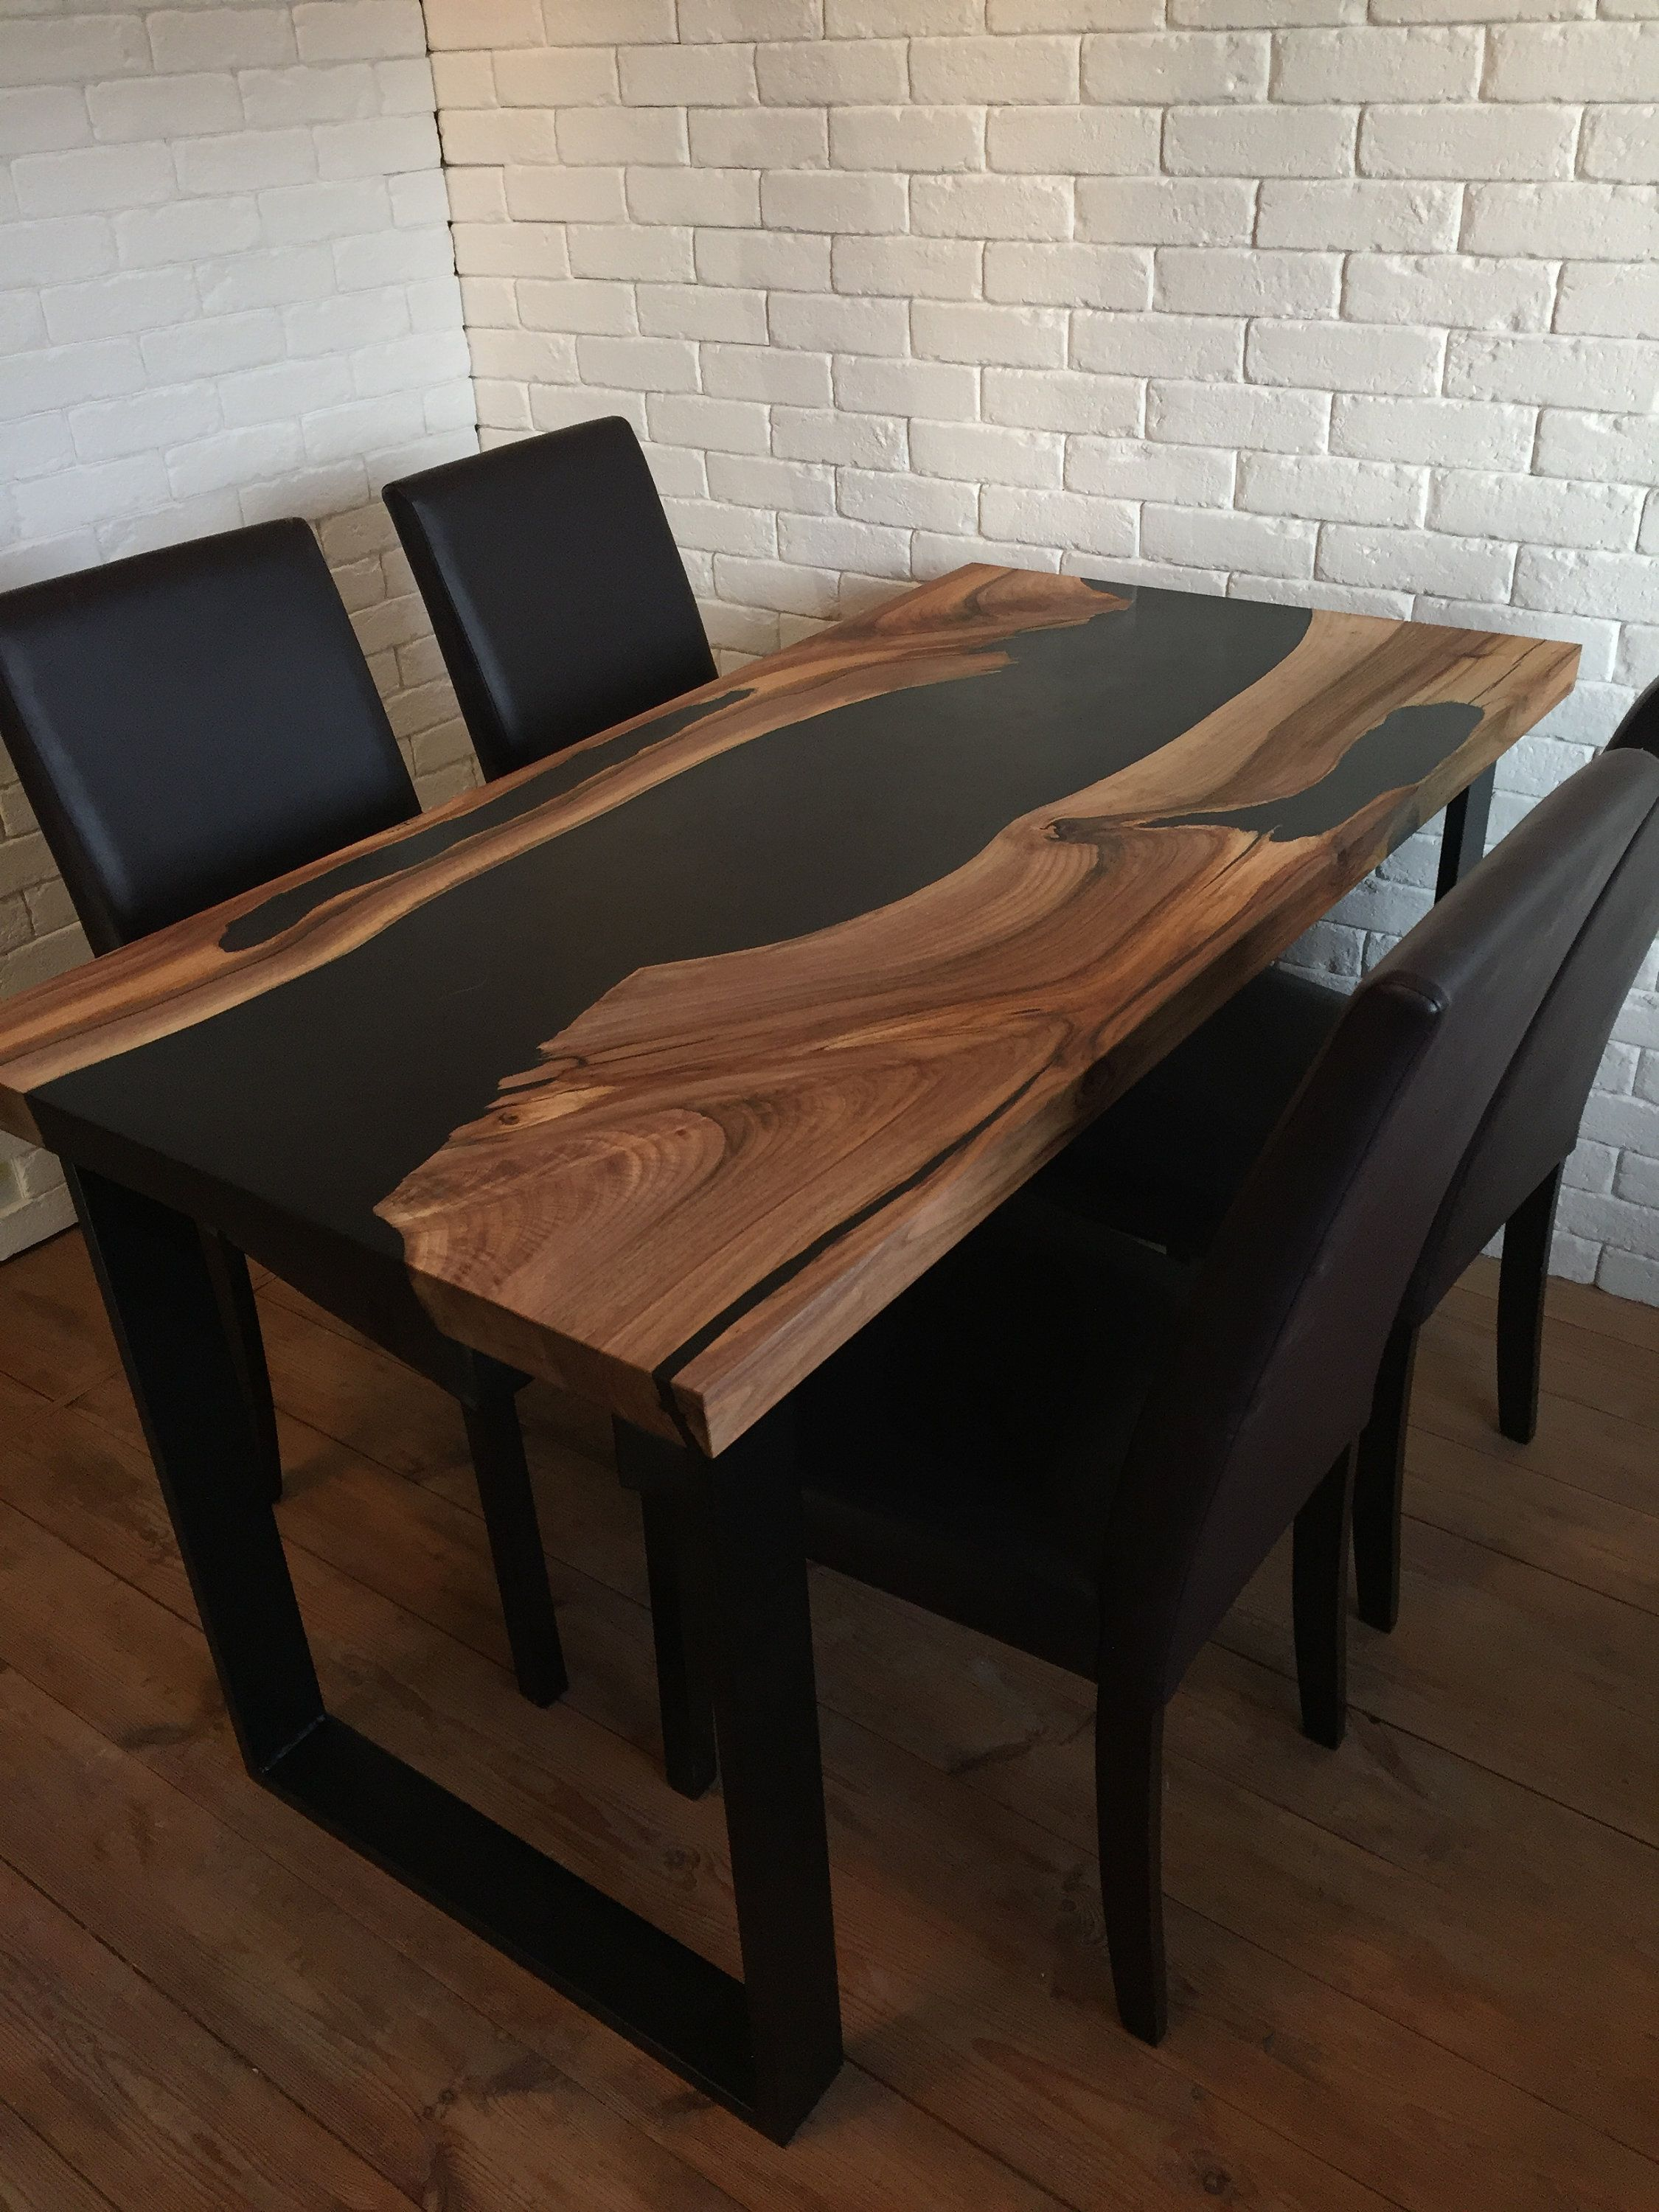 Walnut Wood And Epoxy Resin Table Resin Table Epoxy Resin Table